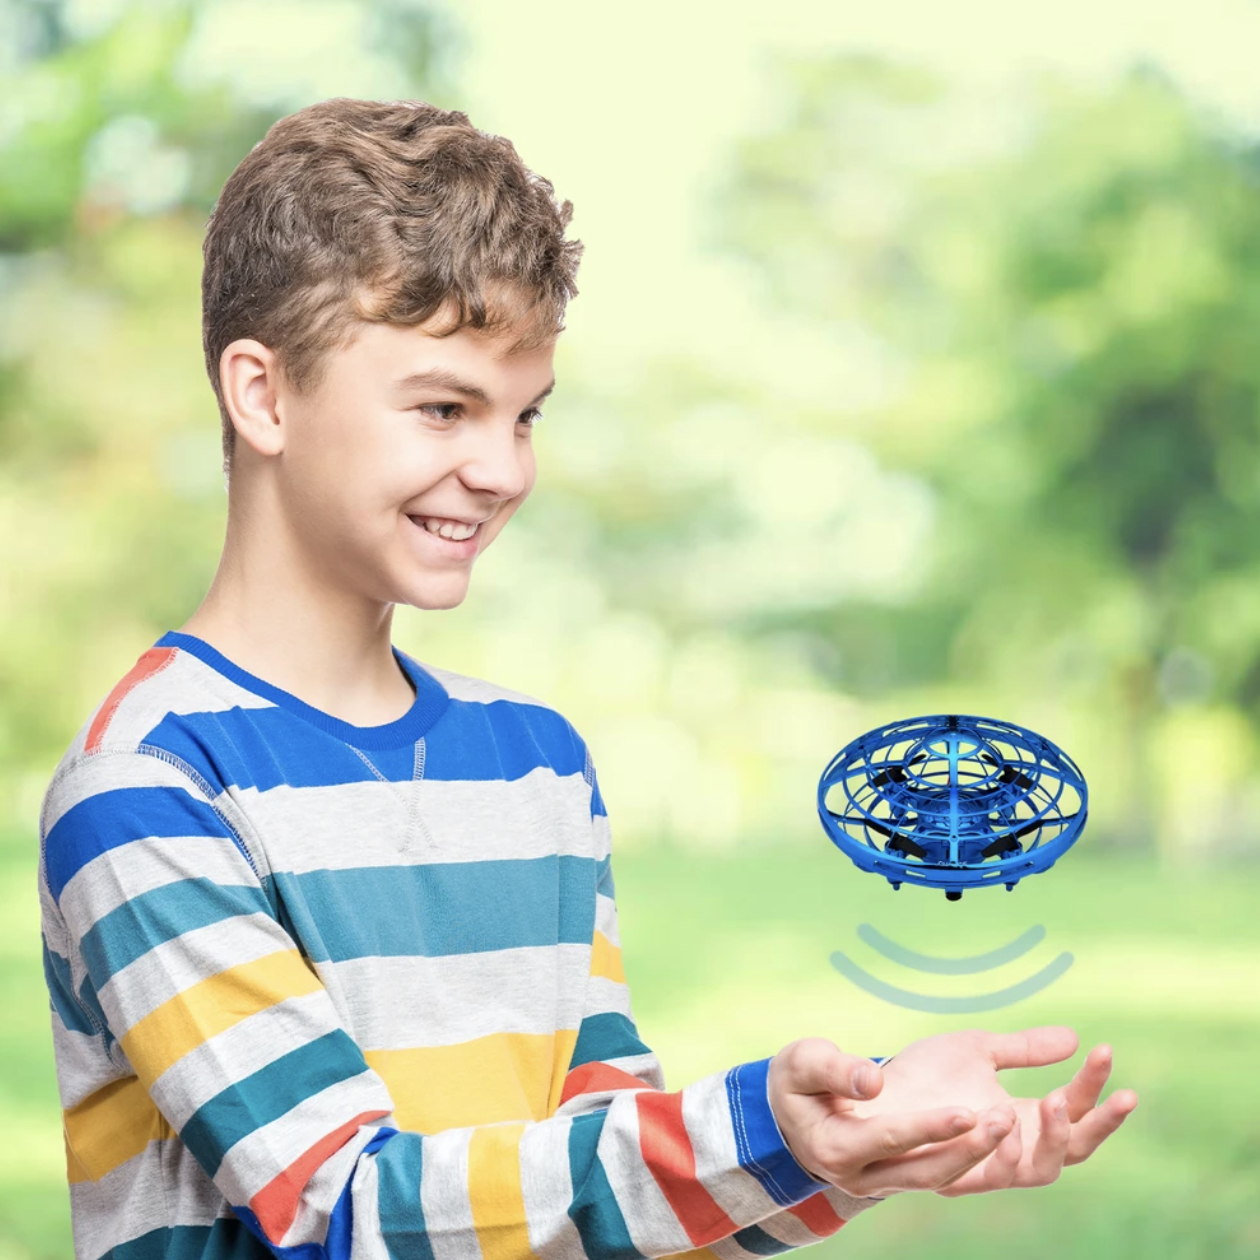 A kid with the blue mini drone hovering above their hands